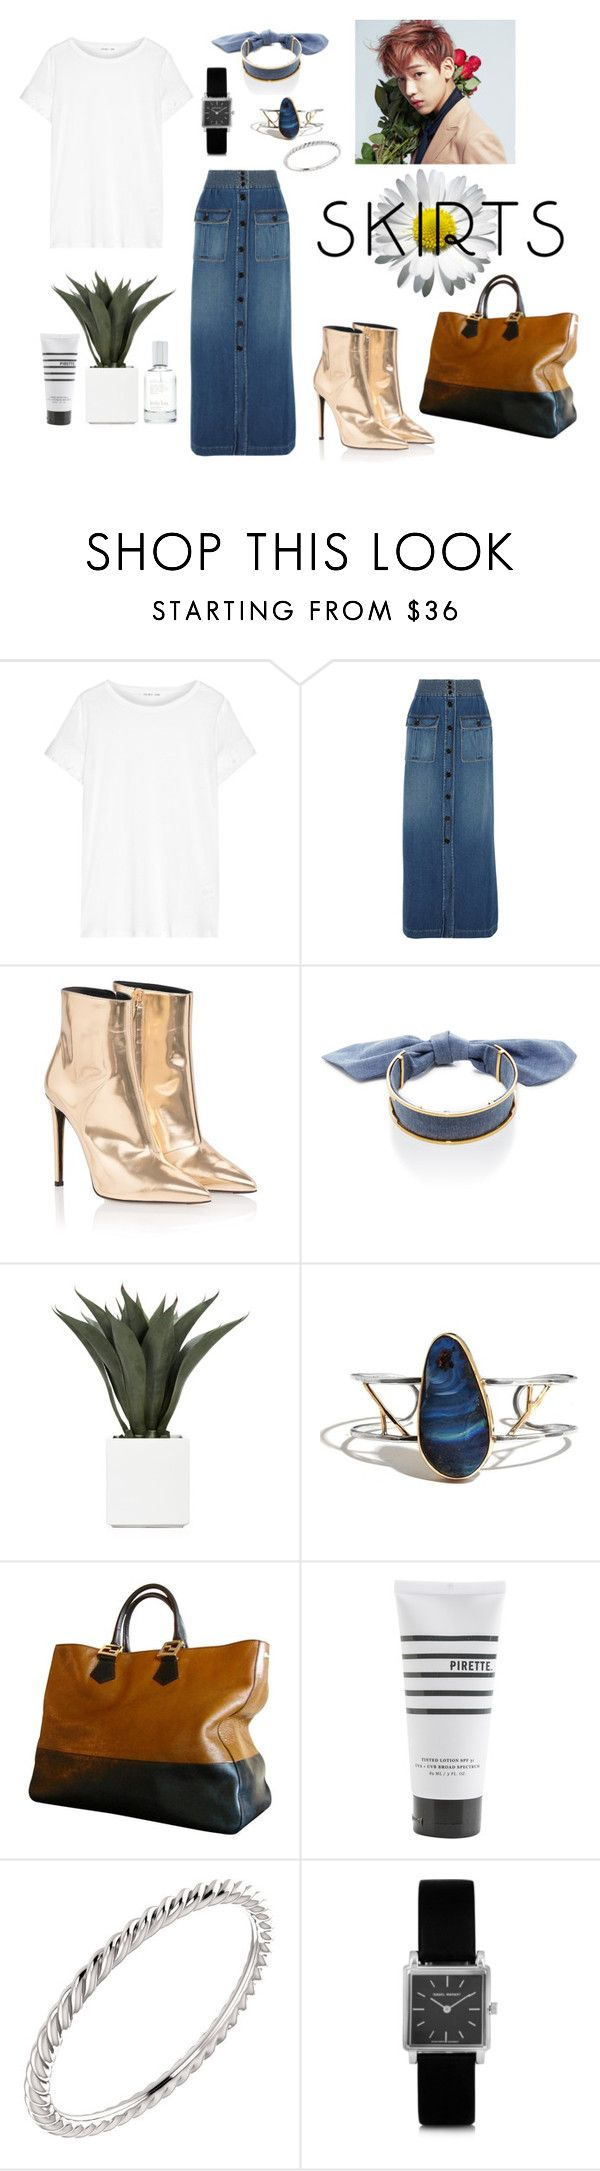 """""""""""If you must have a t-shirt, it must be cashmere"""" -Parisian lady."""" by anmabel on Polyvore featuring Helmut Lang, Chloé, Balenciaga, Monica Sordo, Bambam, Fendi, Pirette, Wish by Amanda Rose, Isabel Marant and Splendid"""